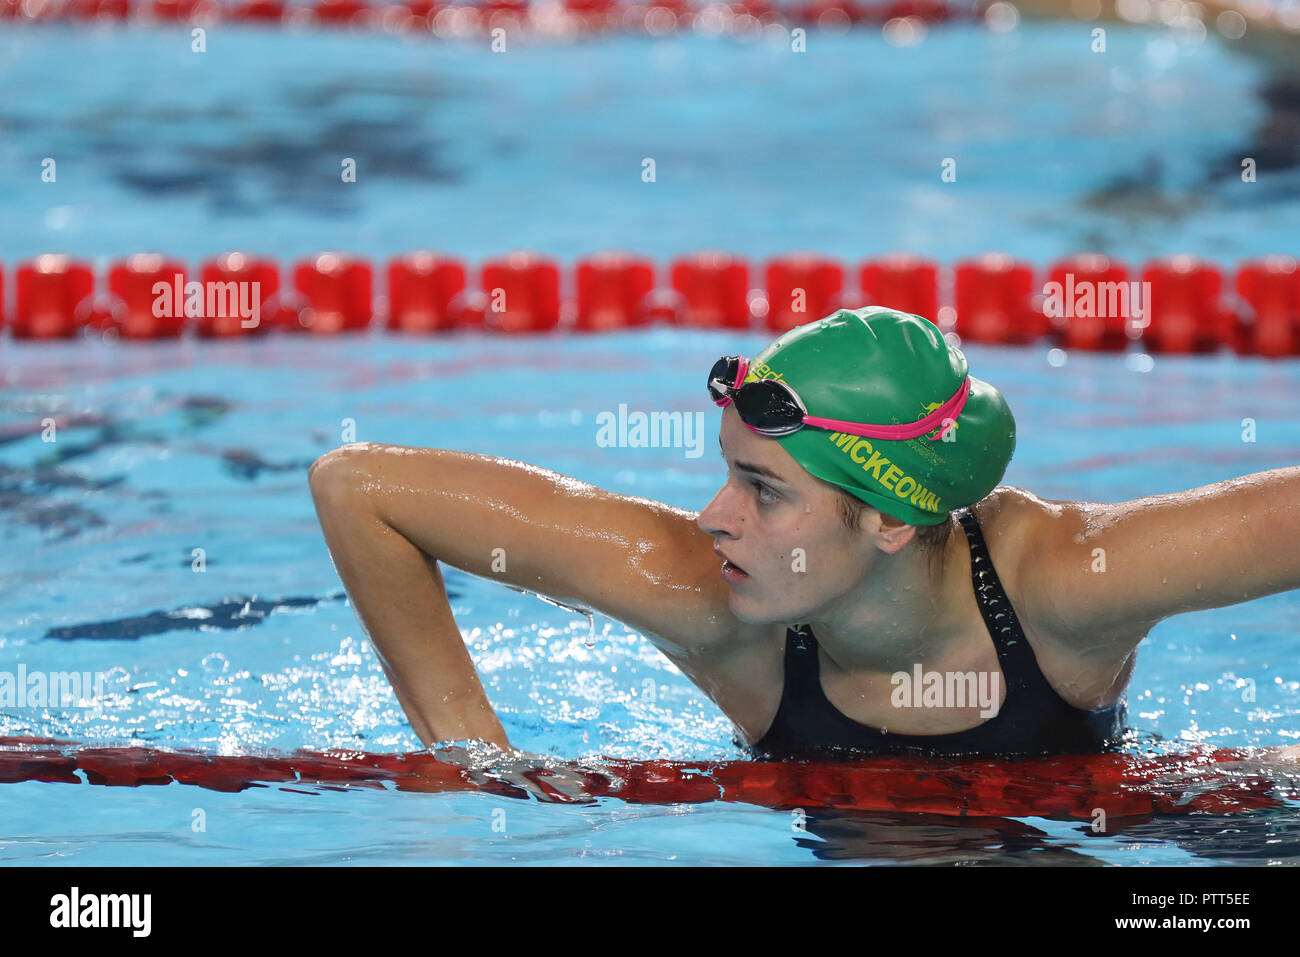 Australian swimmer Kaylee McKeown prepares to compete in the Swimming Women's 50m Backstroke Heat at the Natatorium during the fourth day of competitions of the Youth Olympic Games, in Buenos Aires, Argentina, 10 October 2018. EFE/Juan Ignacio Roncoroni - Stock Image